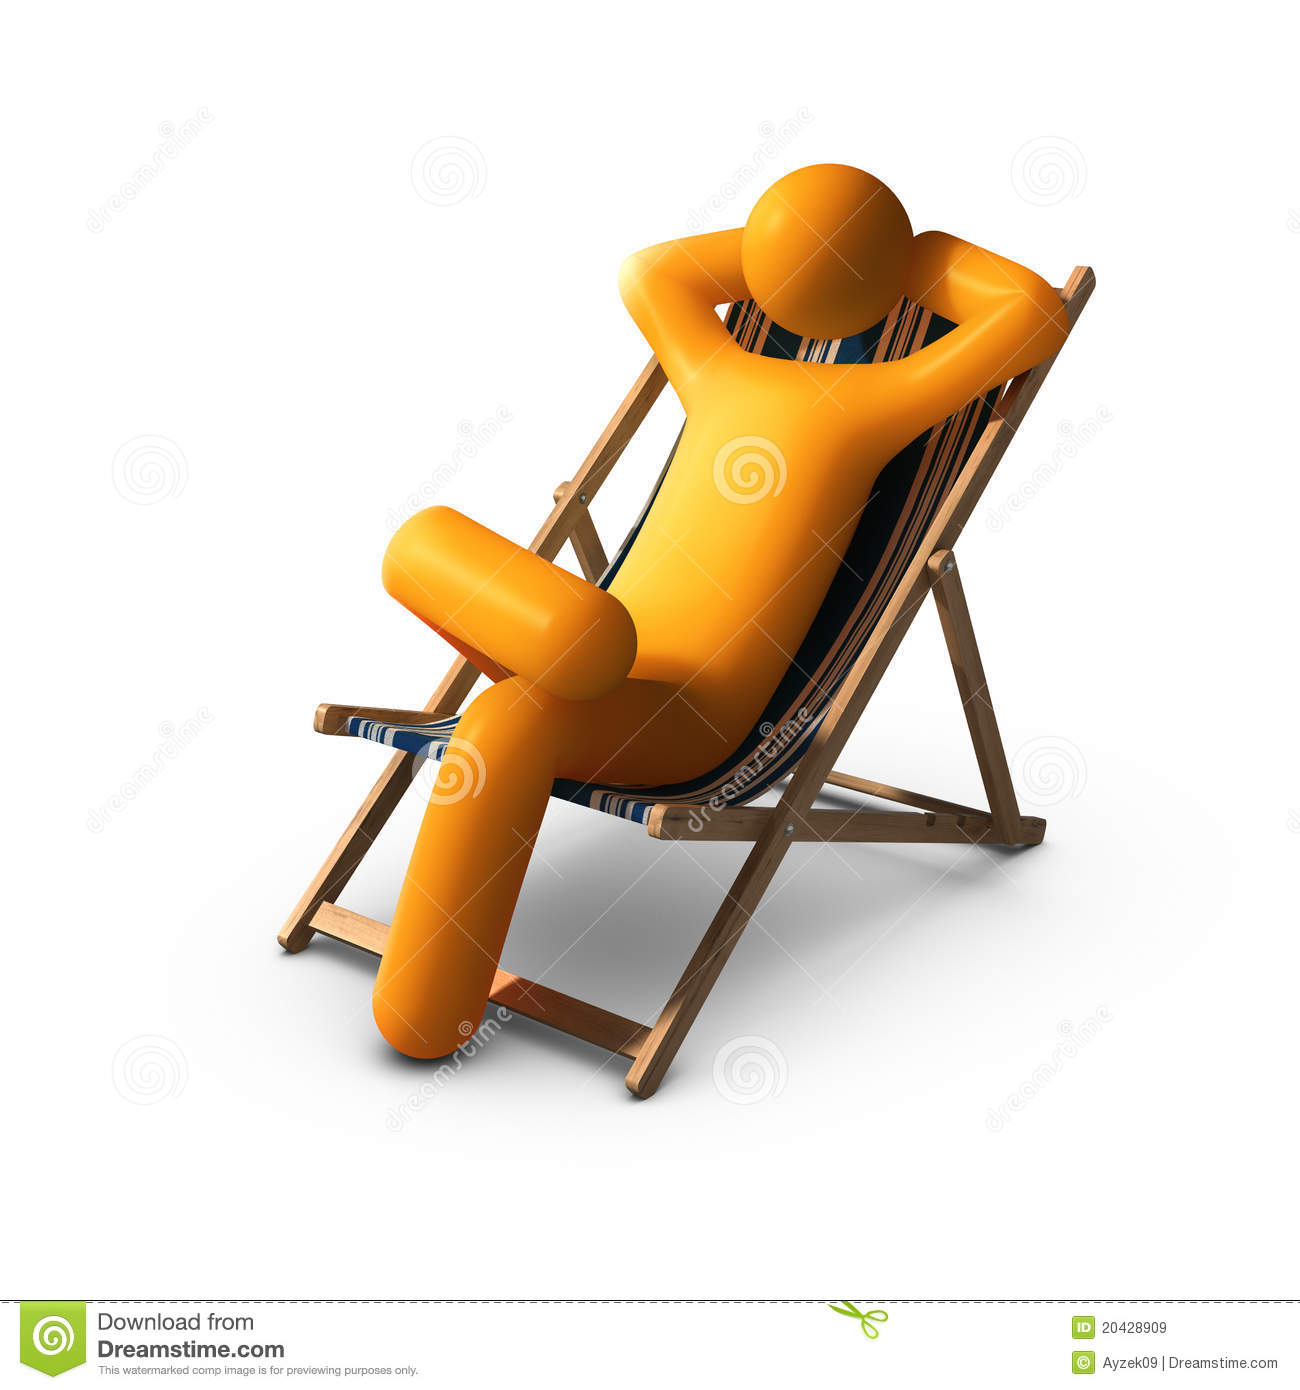 Sitting On Deck Chairs Enjoying Vacation Royalty Free Stock Images - Image: 20428909